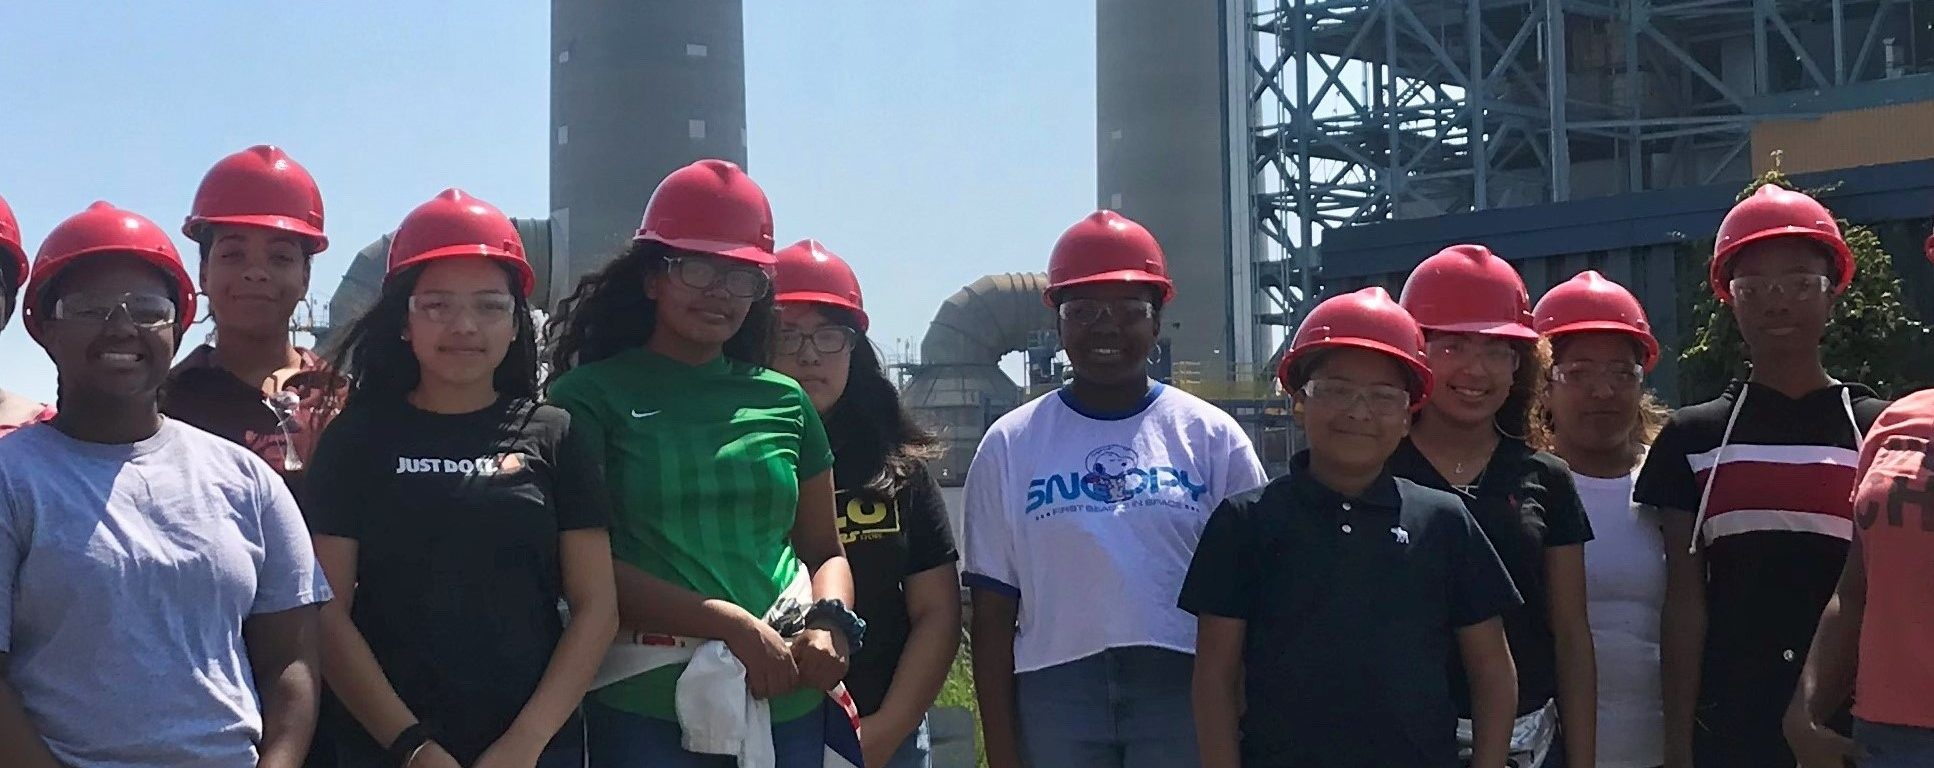 Crosby Scholars receives $10,000 from Duke Energy to support STEM programming for African American and Latina girls